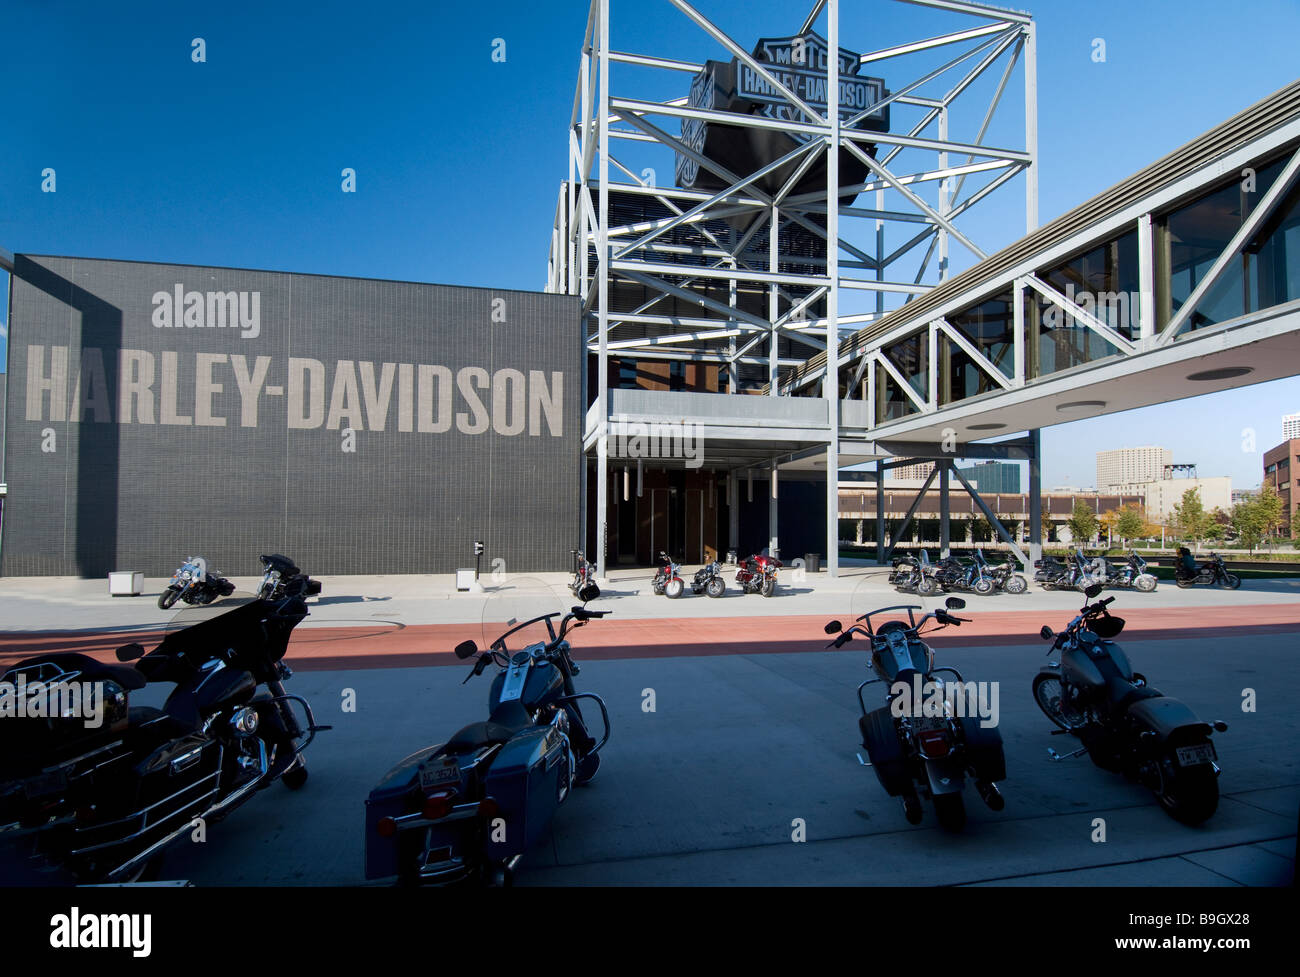 harley davidson museum in milwaukee wisconsin stock photo, royalty